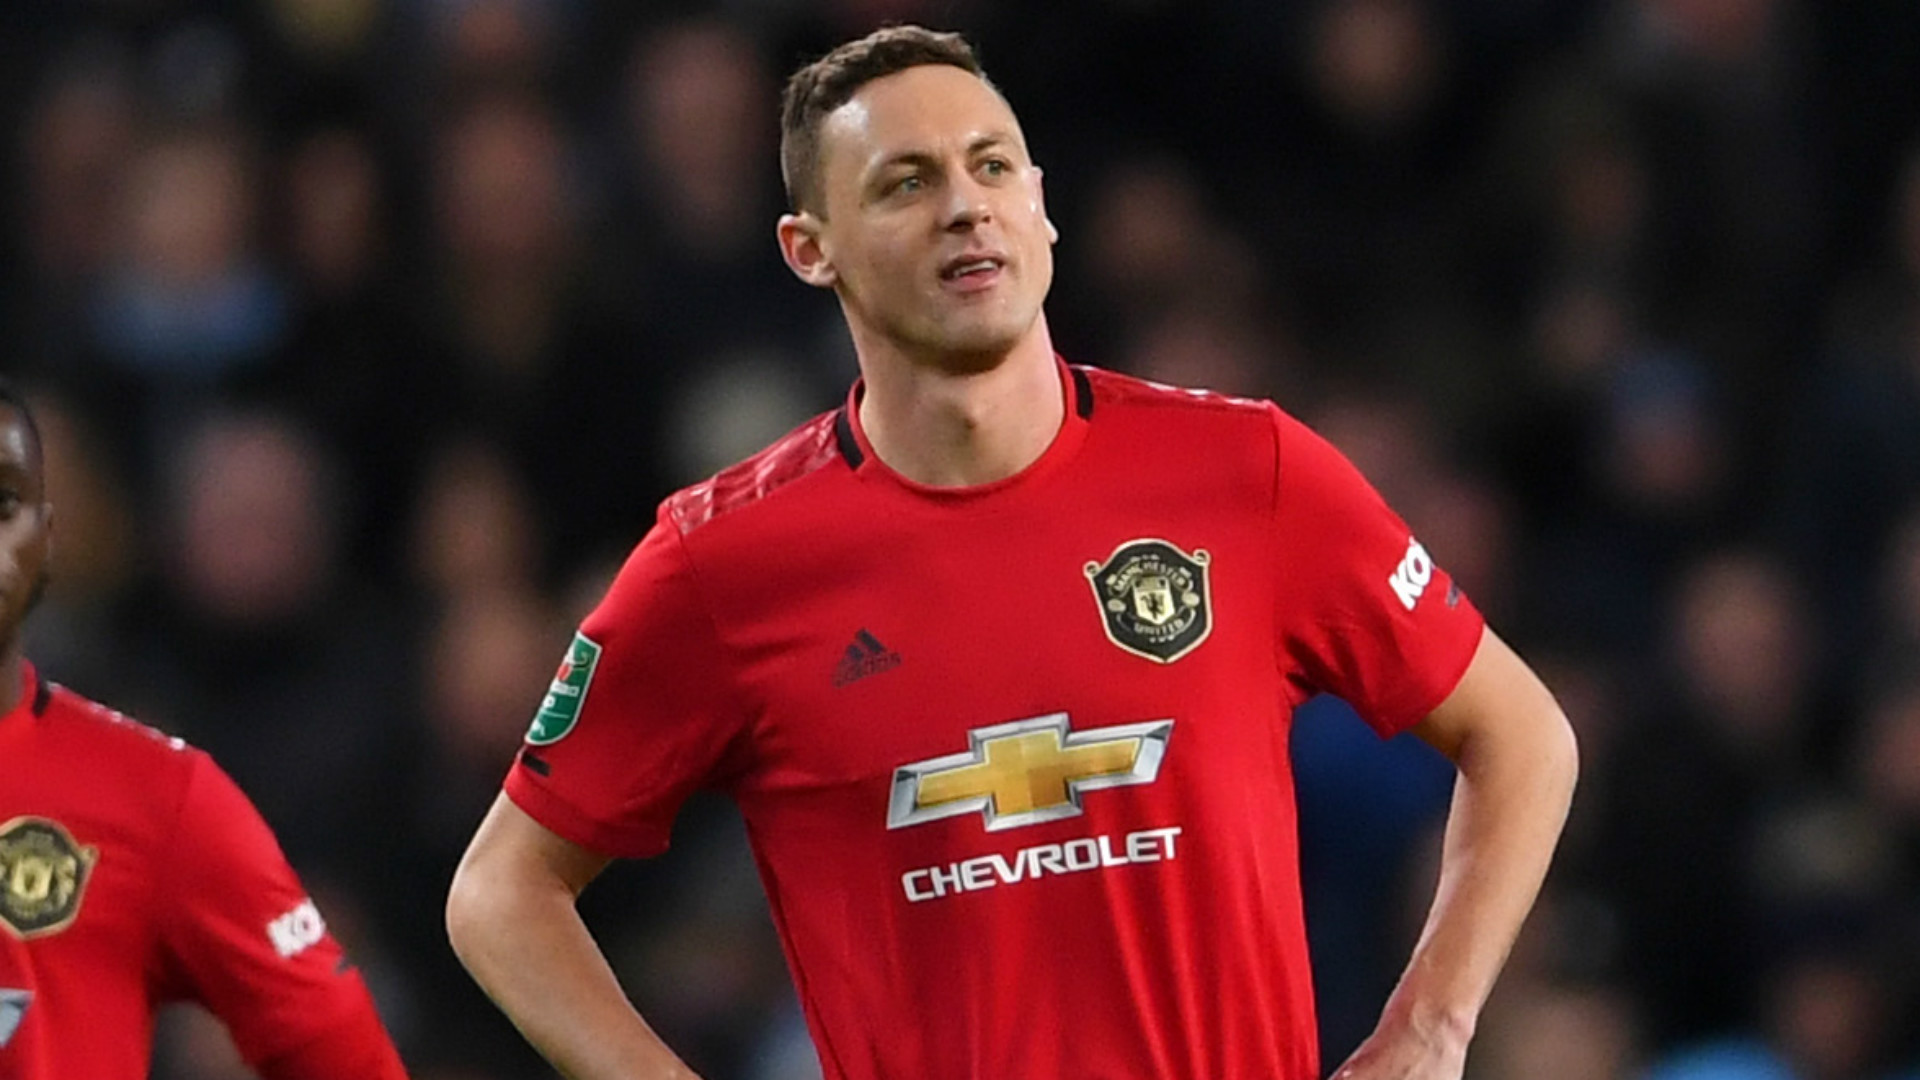 'We have to recover' - Matic urges Man Utd to refocus on Champions League race after FA Cup disappointment